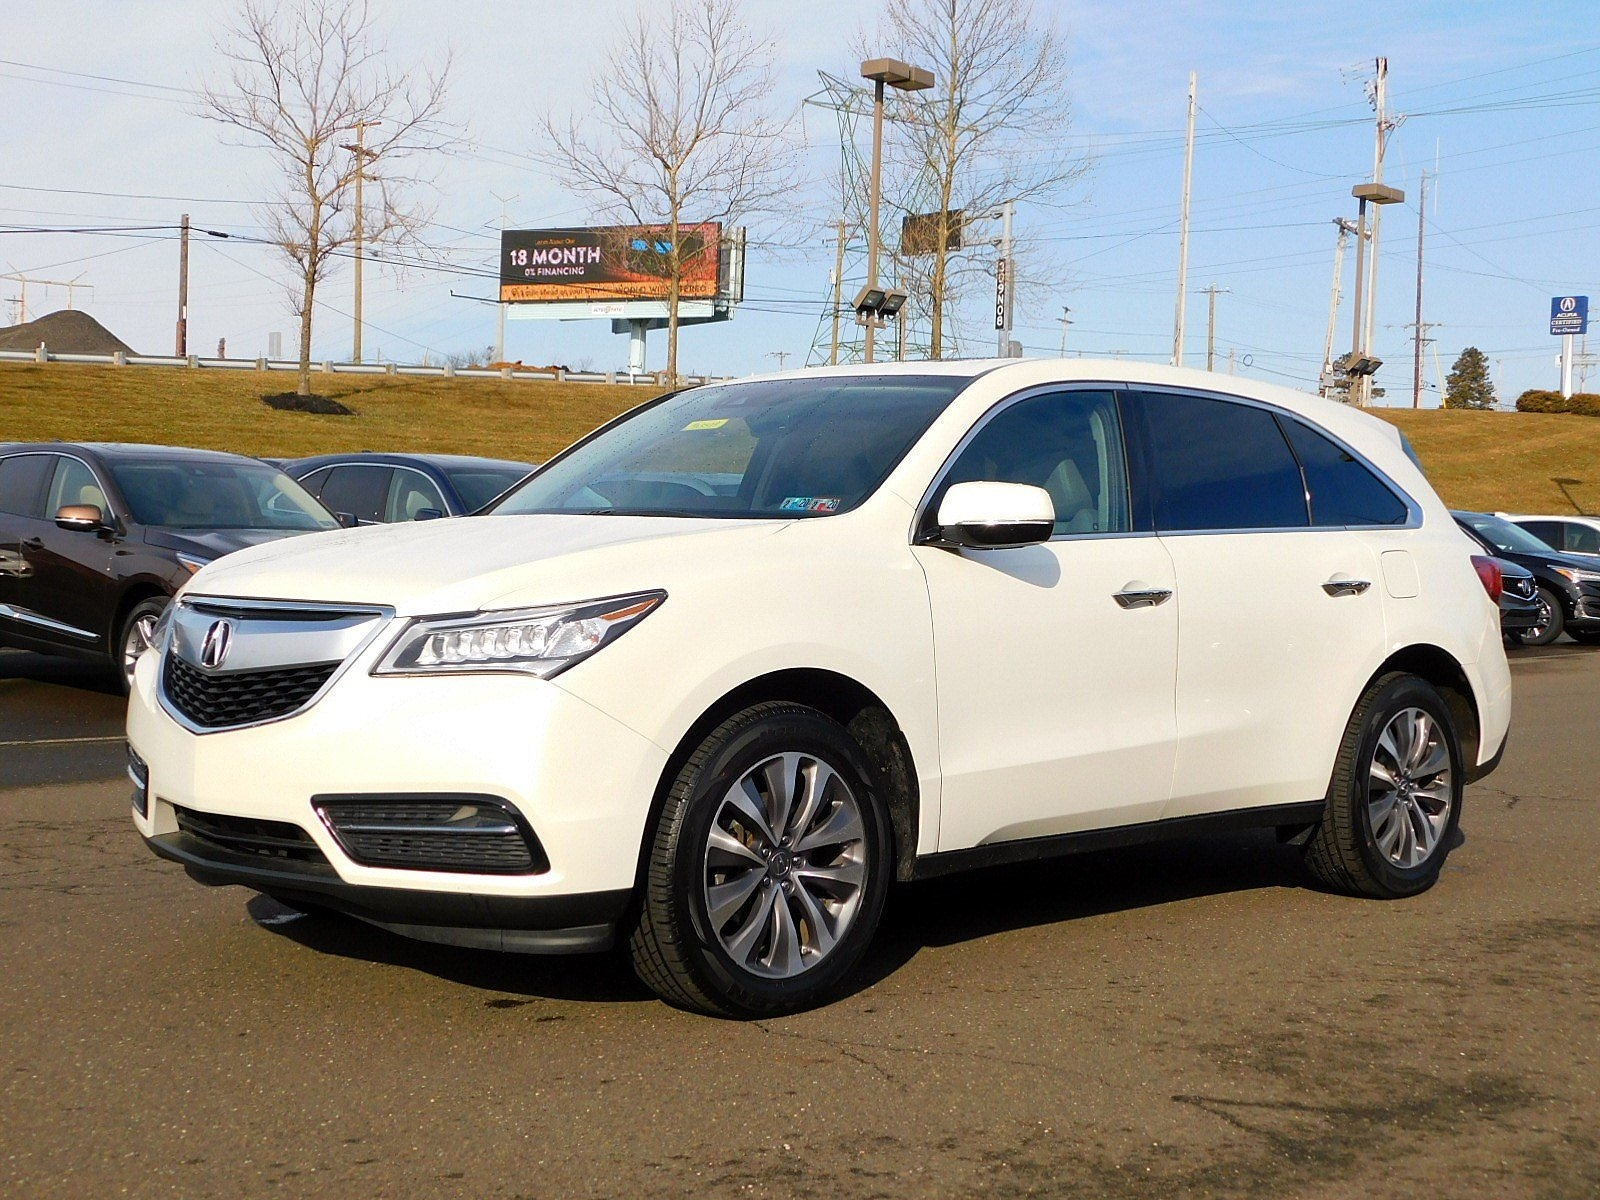 Certified Used or Used Vehicles for Sale in Montgomeryville PA Montgomeryville Acura